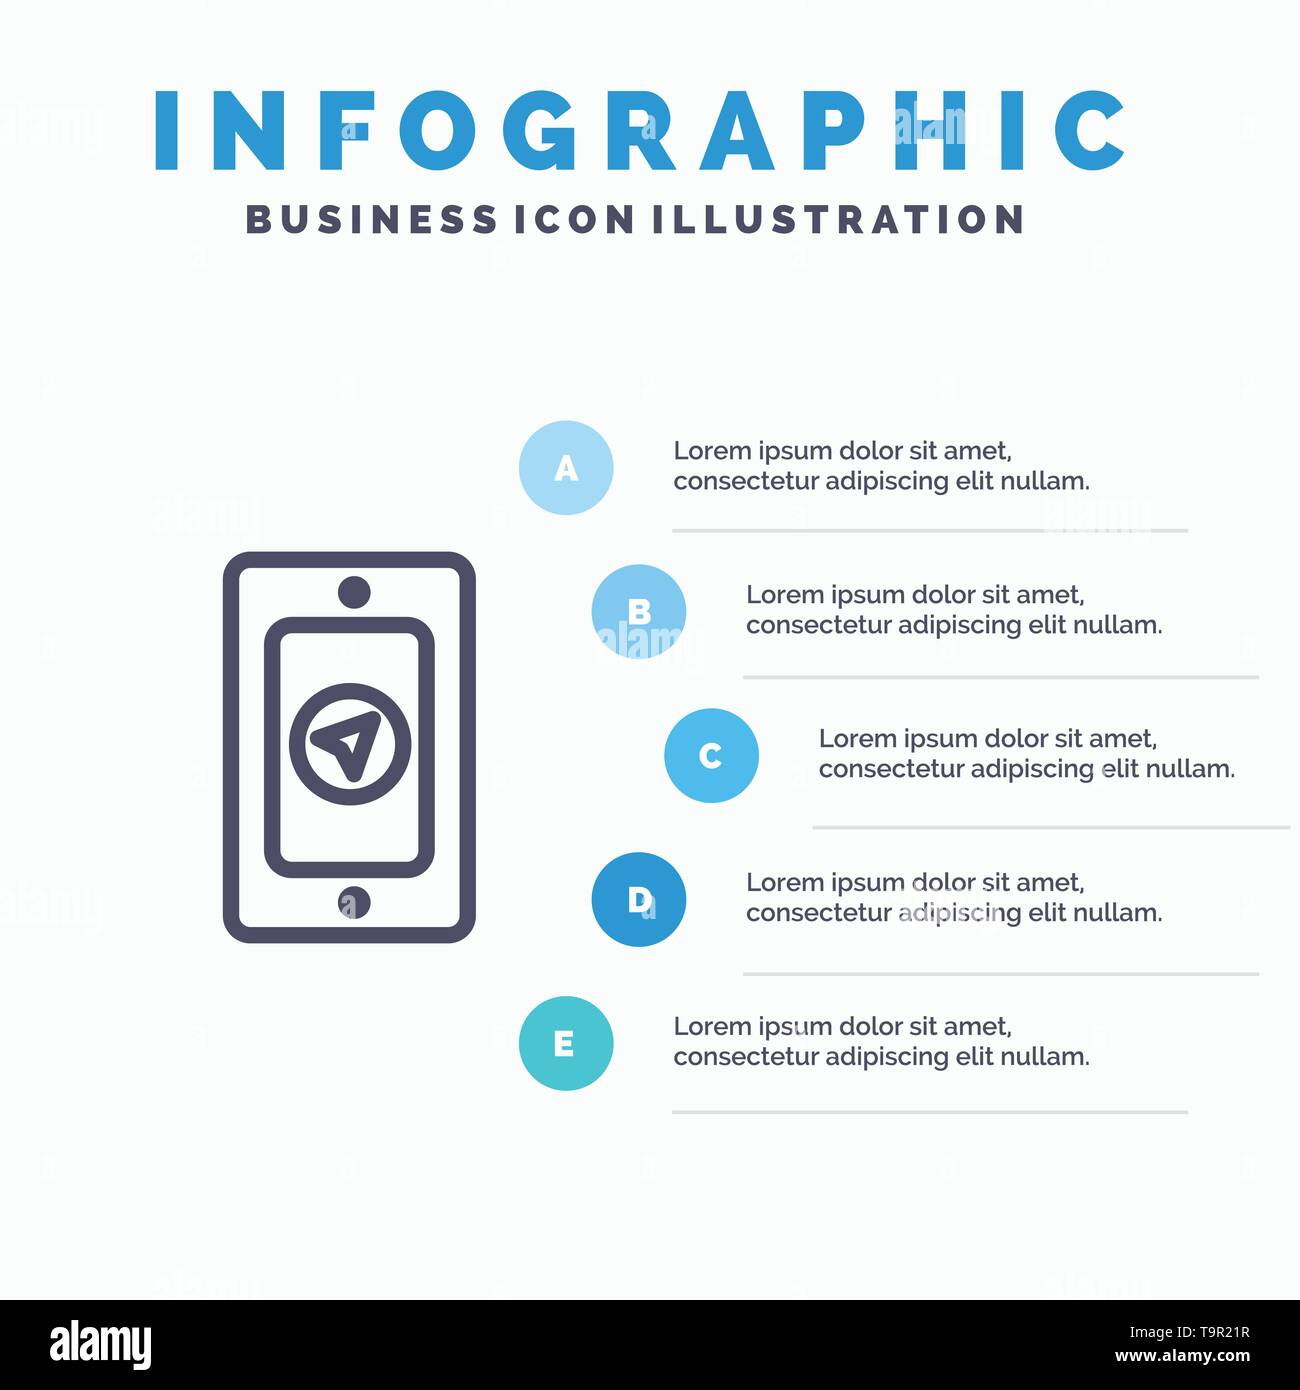 Mobile, Pin, Rainy Line icon with 5 steps presentation infographics Background - Stock Image